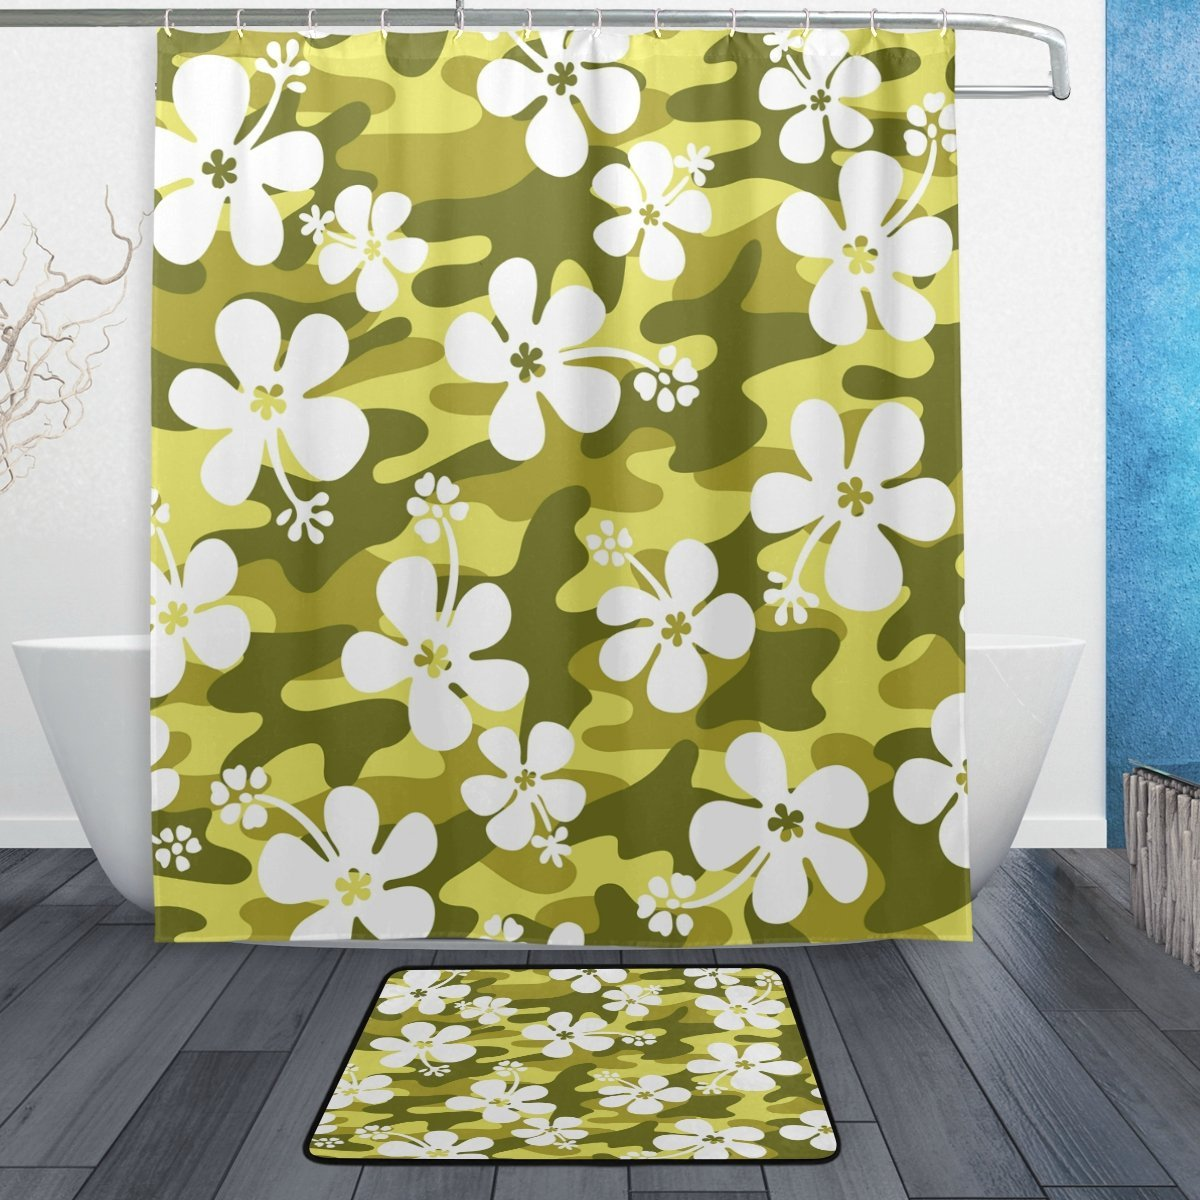 Hibiscus Flower Camouflage Green Waterproof Polyester Fabric Shower Curtain with Hooks Doormat Bath Floor Mat Bathroom Home